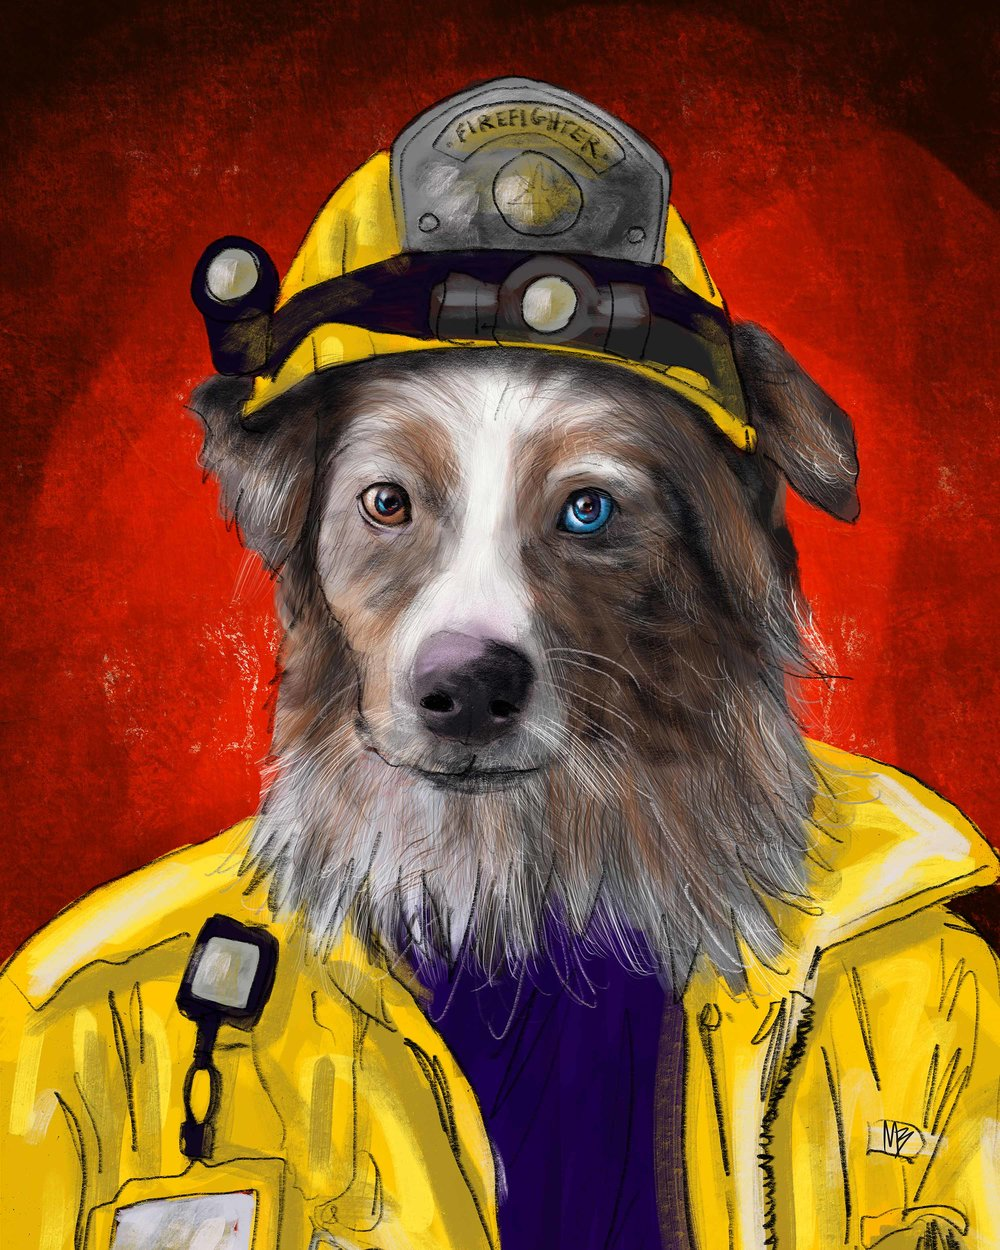 Firefighter Aussie Shepherd Uniform Pets